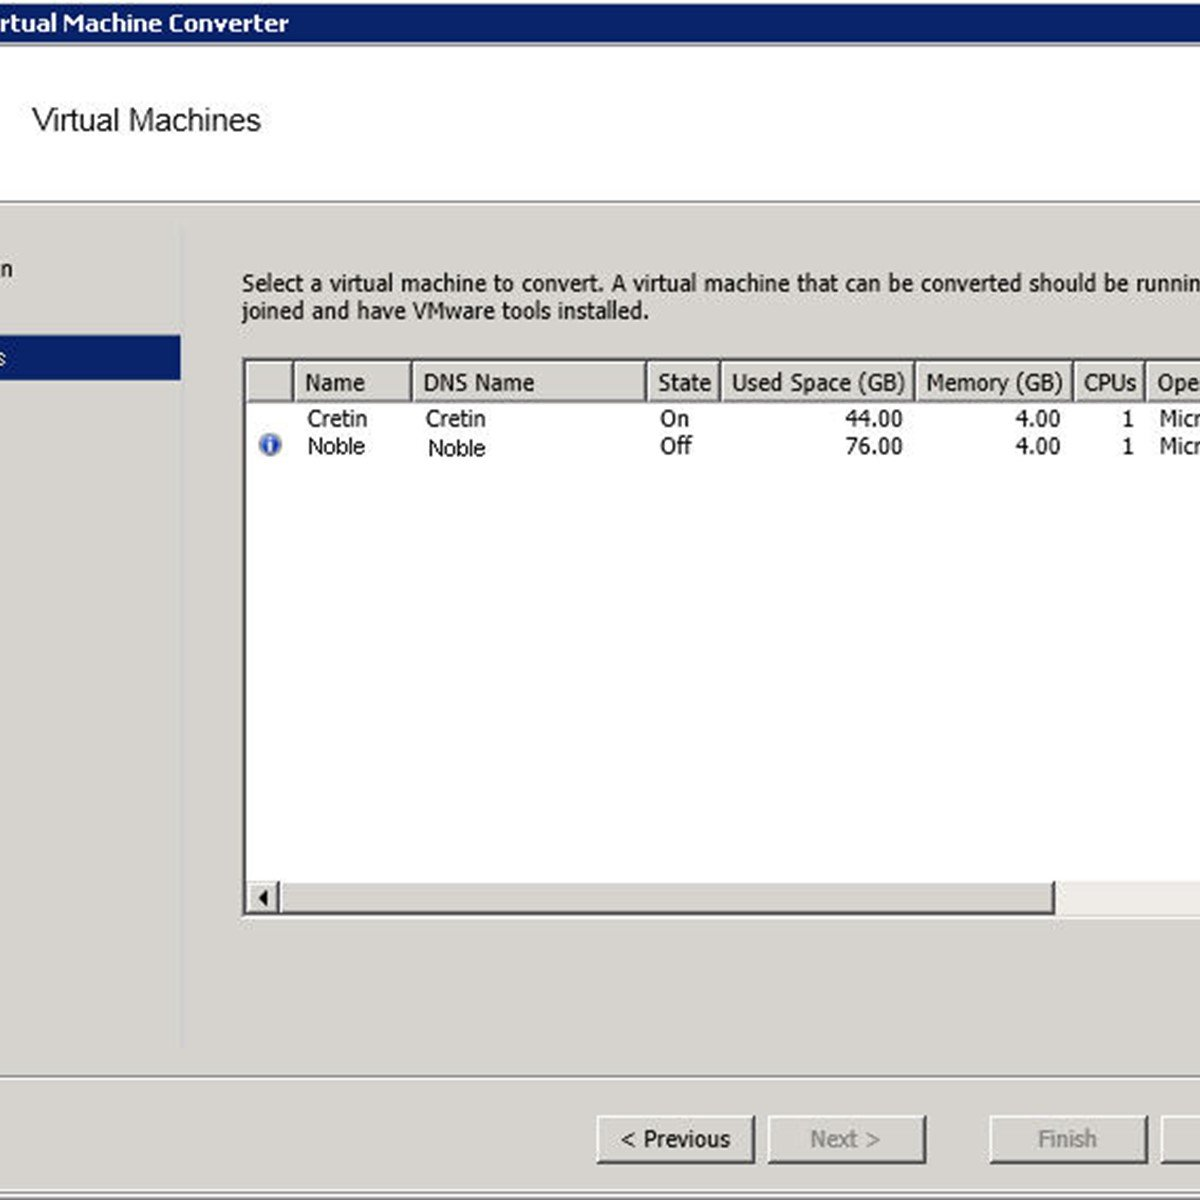 Microsoft Virtual Machine Converter Alternatives and Similar